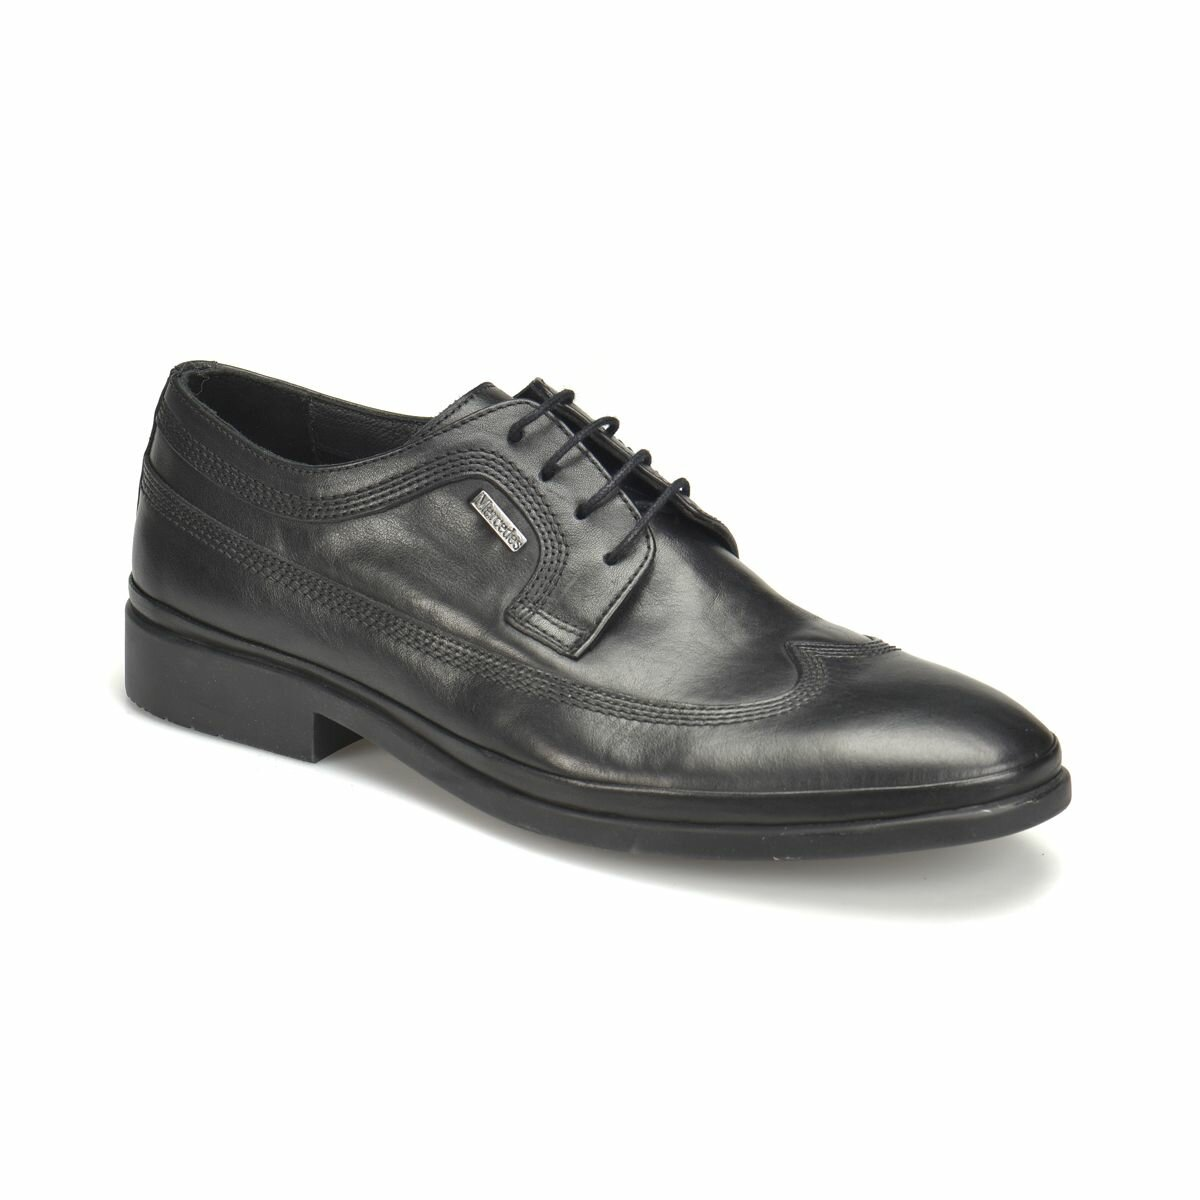 FLO COSTA Black Men 'S Classic Shoes MERCEDES